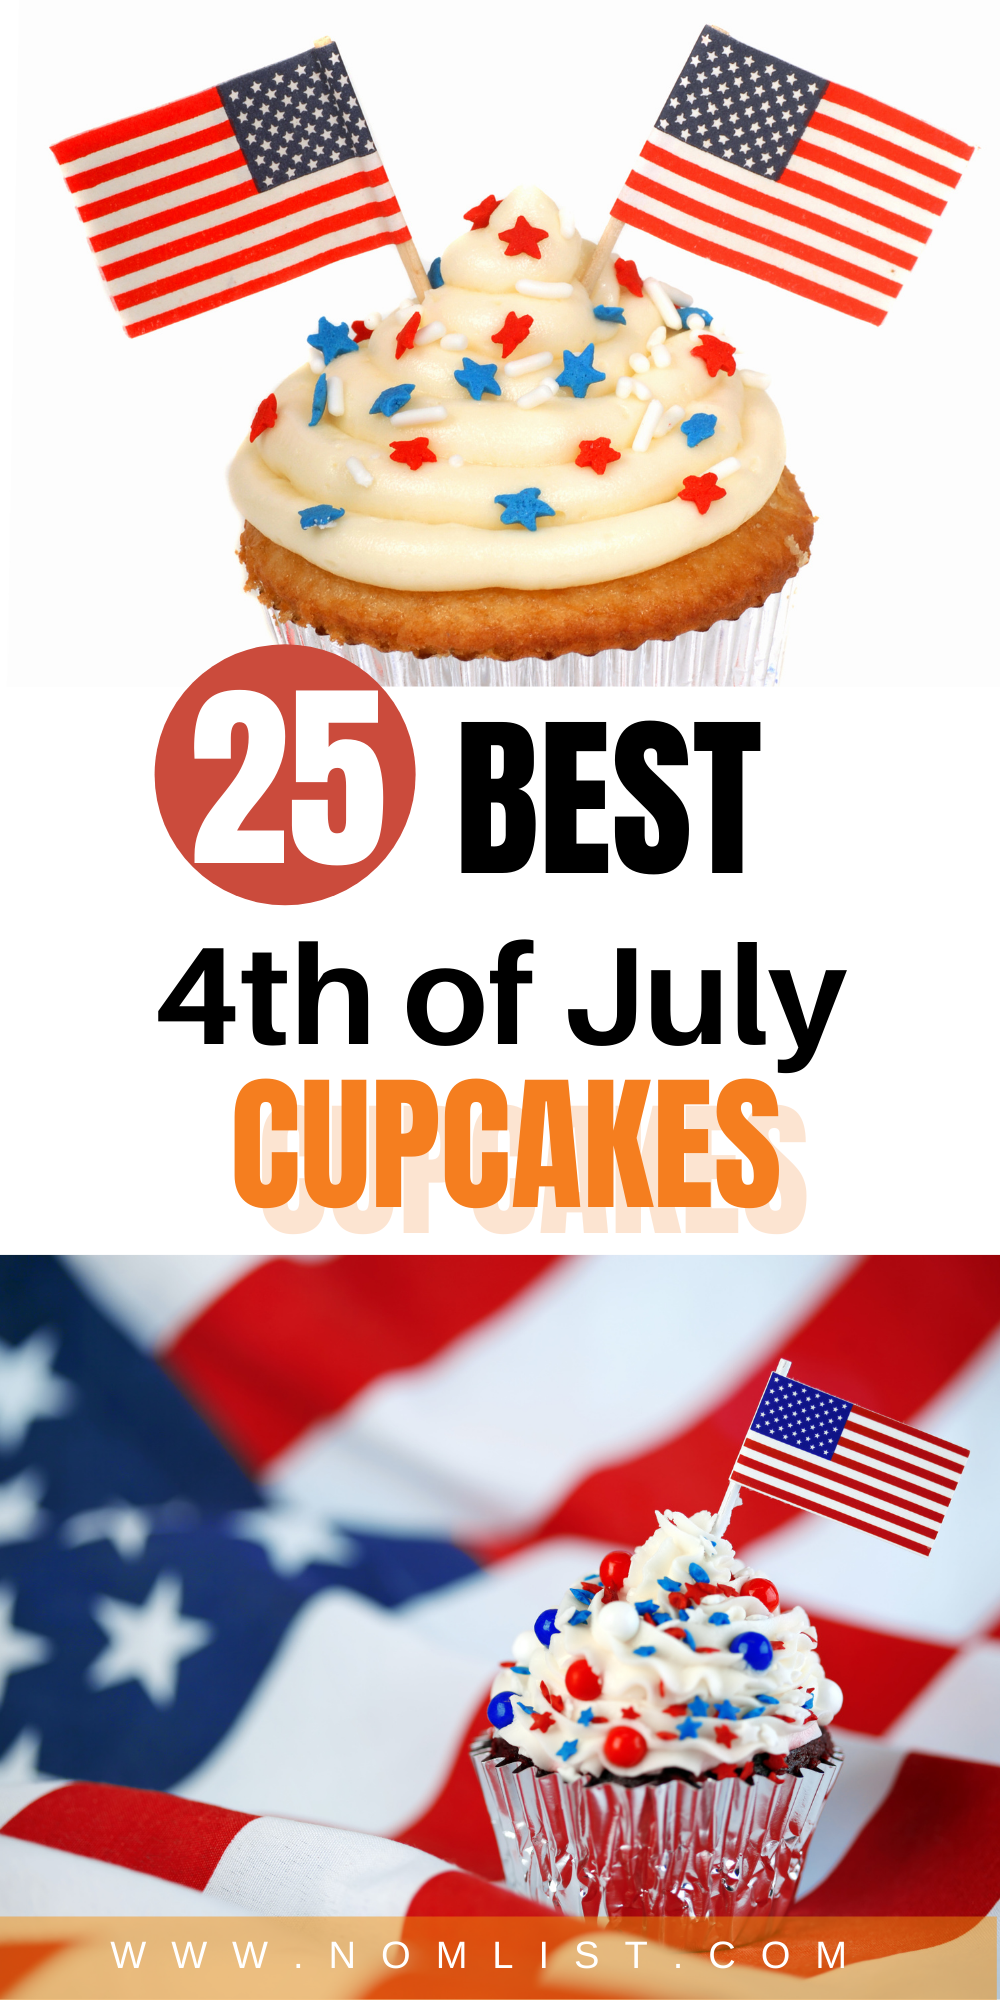 There's no better way to celebrate the 4th of July with something sweet. These delicious 4th of July cupcakes are the perfect baked recipes that will impress your family and friends. Check out the 25 best Fourth of July cupcakes that you will LOVE!